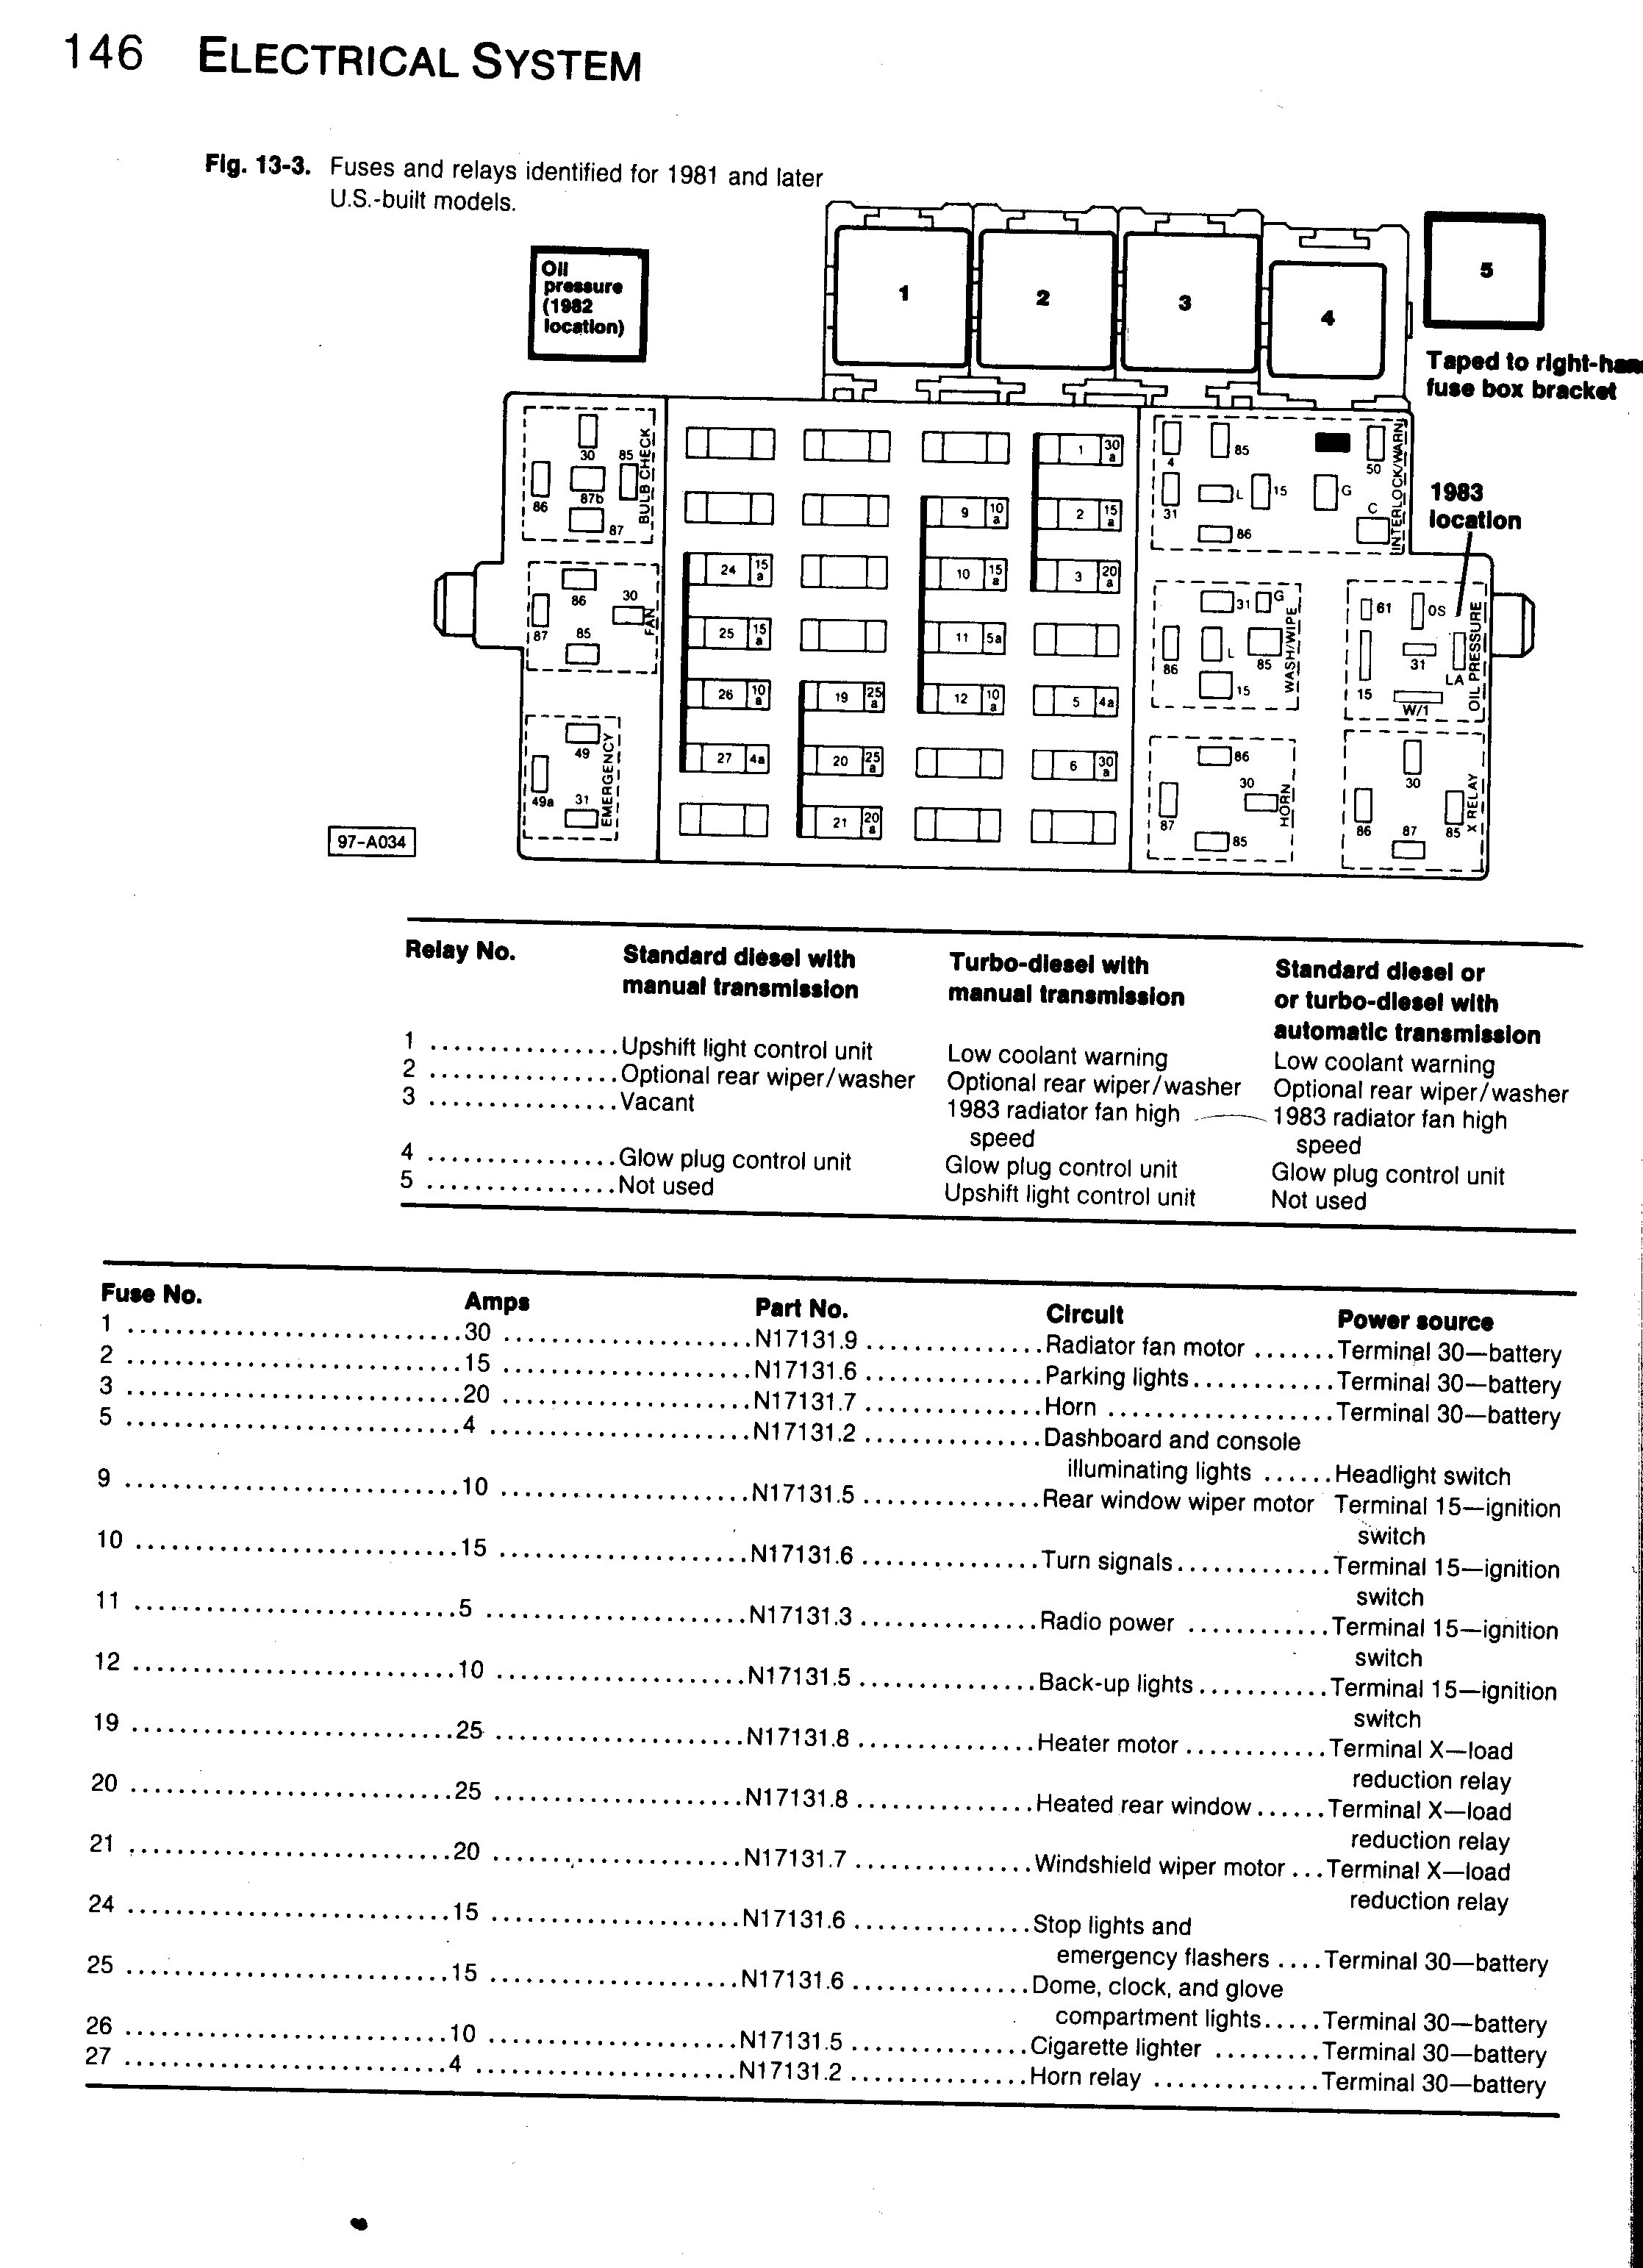 B5 2 8 Fuse Box Location Wiring Diagram Data 07 Ford F 350 Schematic Vw Alarm System Home Ac Evaporator 2000 Beetle Panel